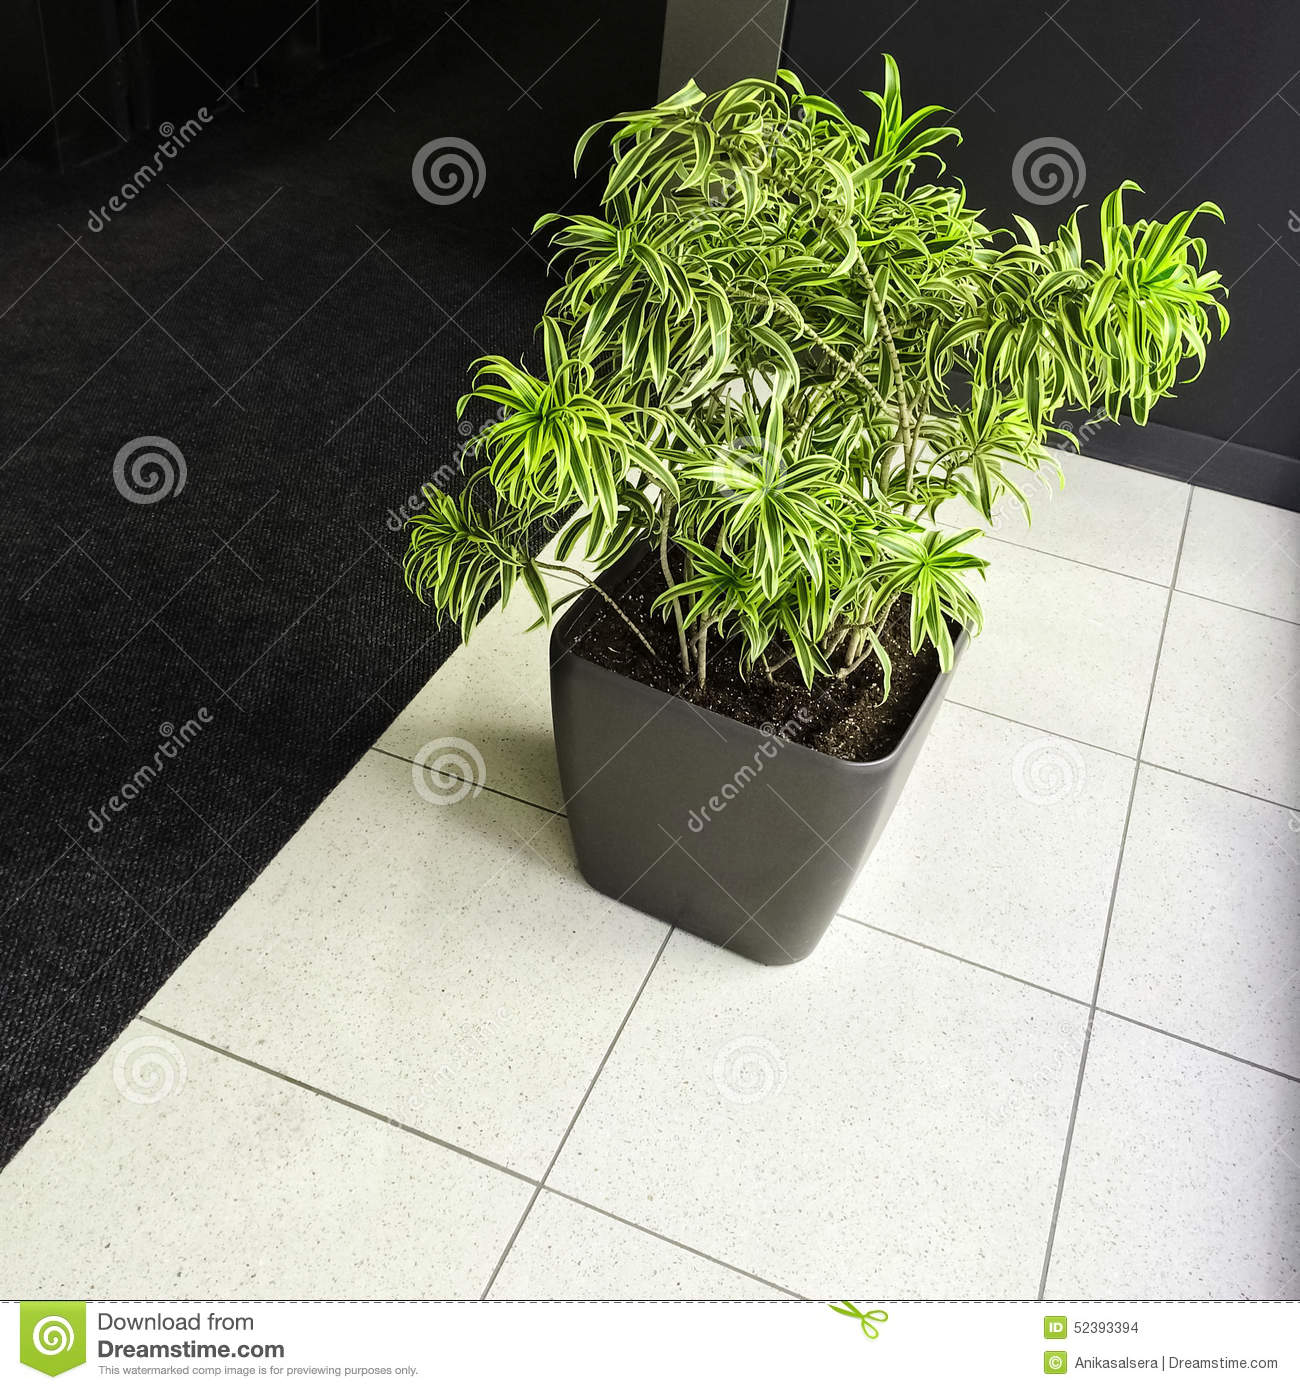 Green plant on black and white floor stock photo image for Green floor plant